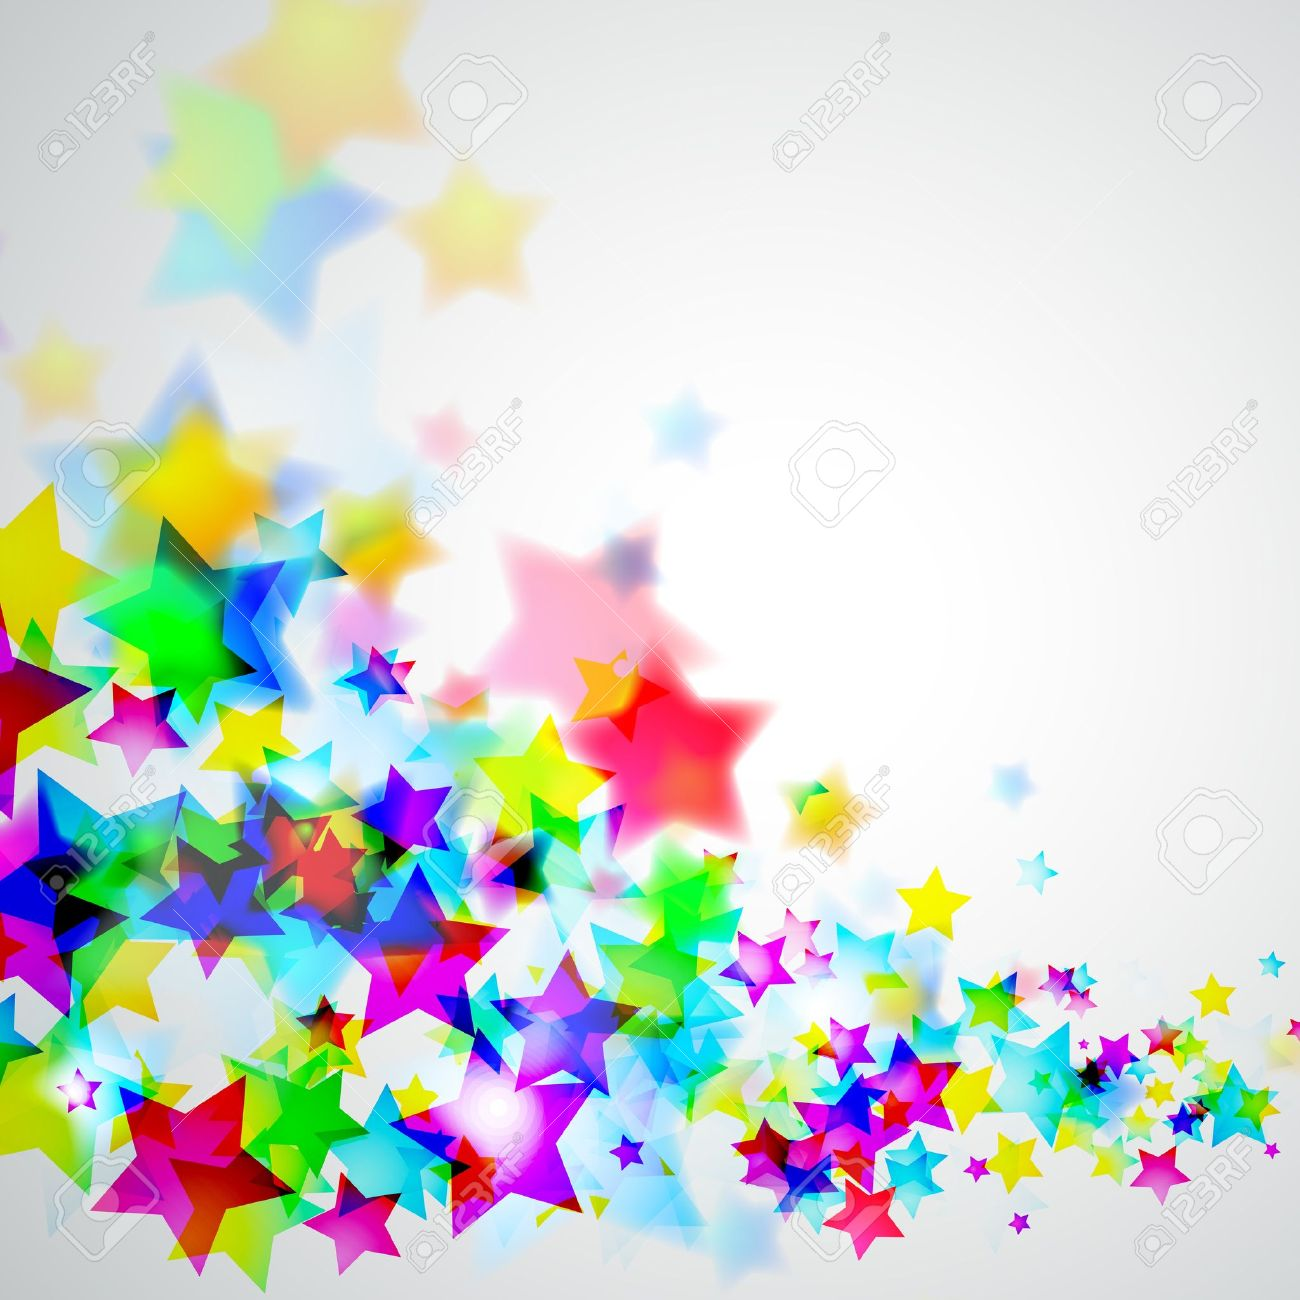 Abstract Rainbow Stars Flyer with delicate Gradient Background Stock Vector - 9162379